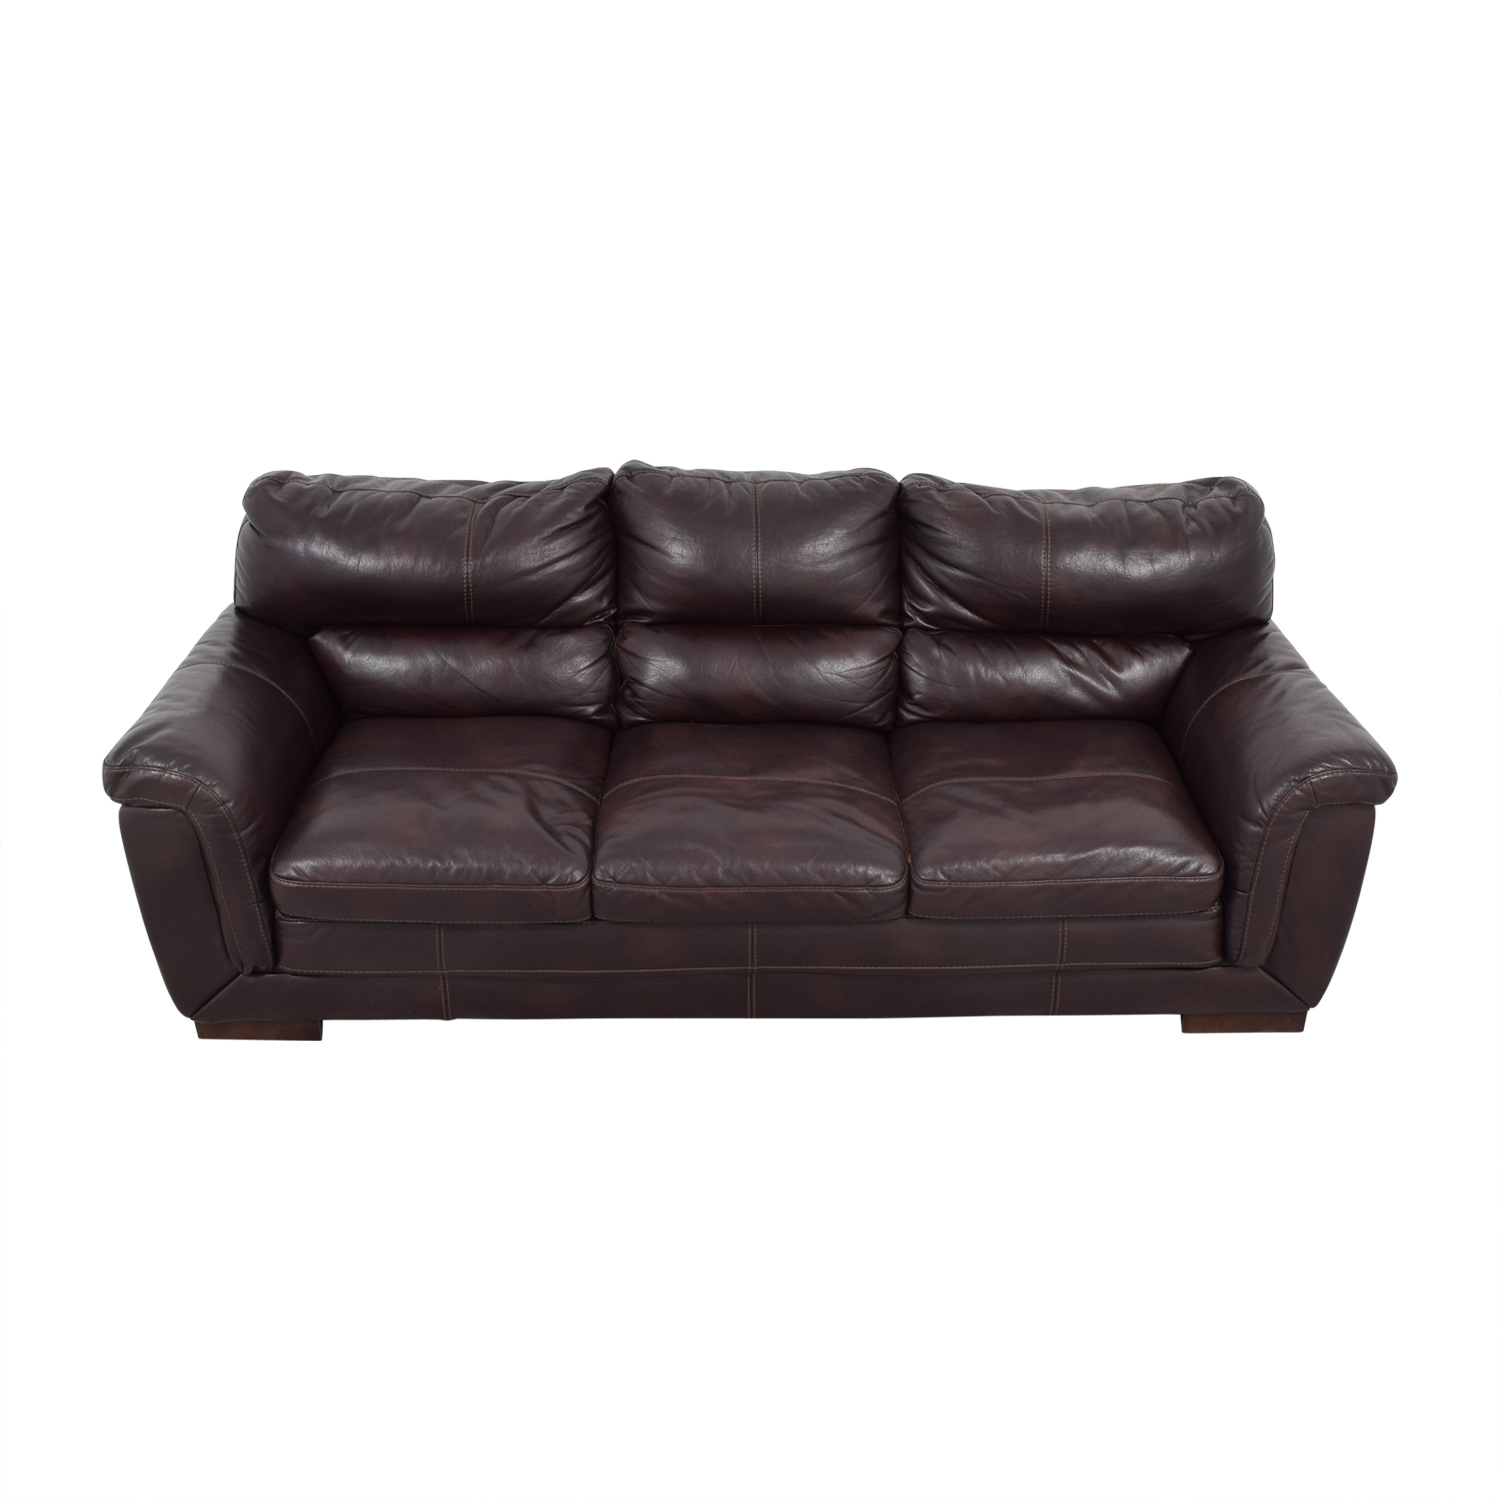 Cushions For Brown Leather Sofas Cushion Sofa 84 Off Cb2 Brown Leather Three Cushion Sofa